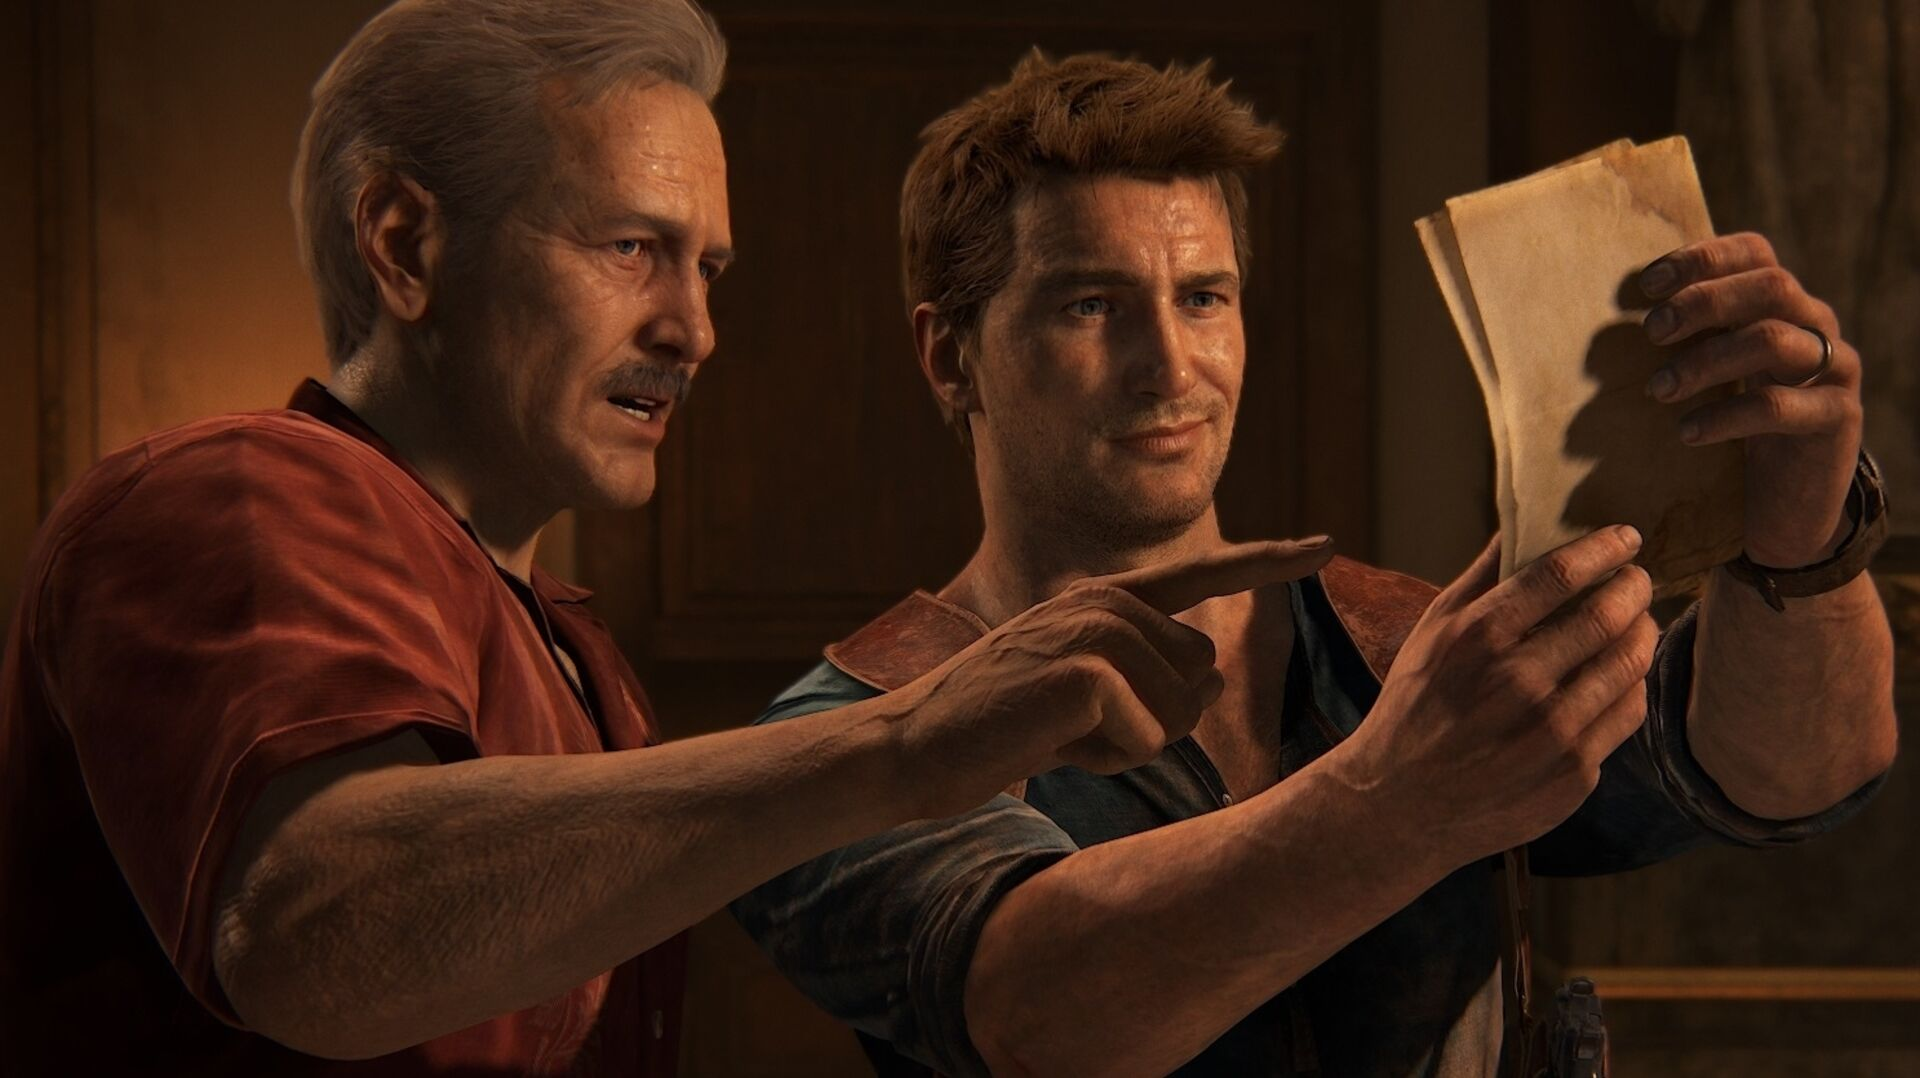 Sony S Uncharted Movie Gets Its Seventh Director Eurogamer Net